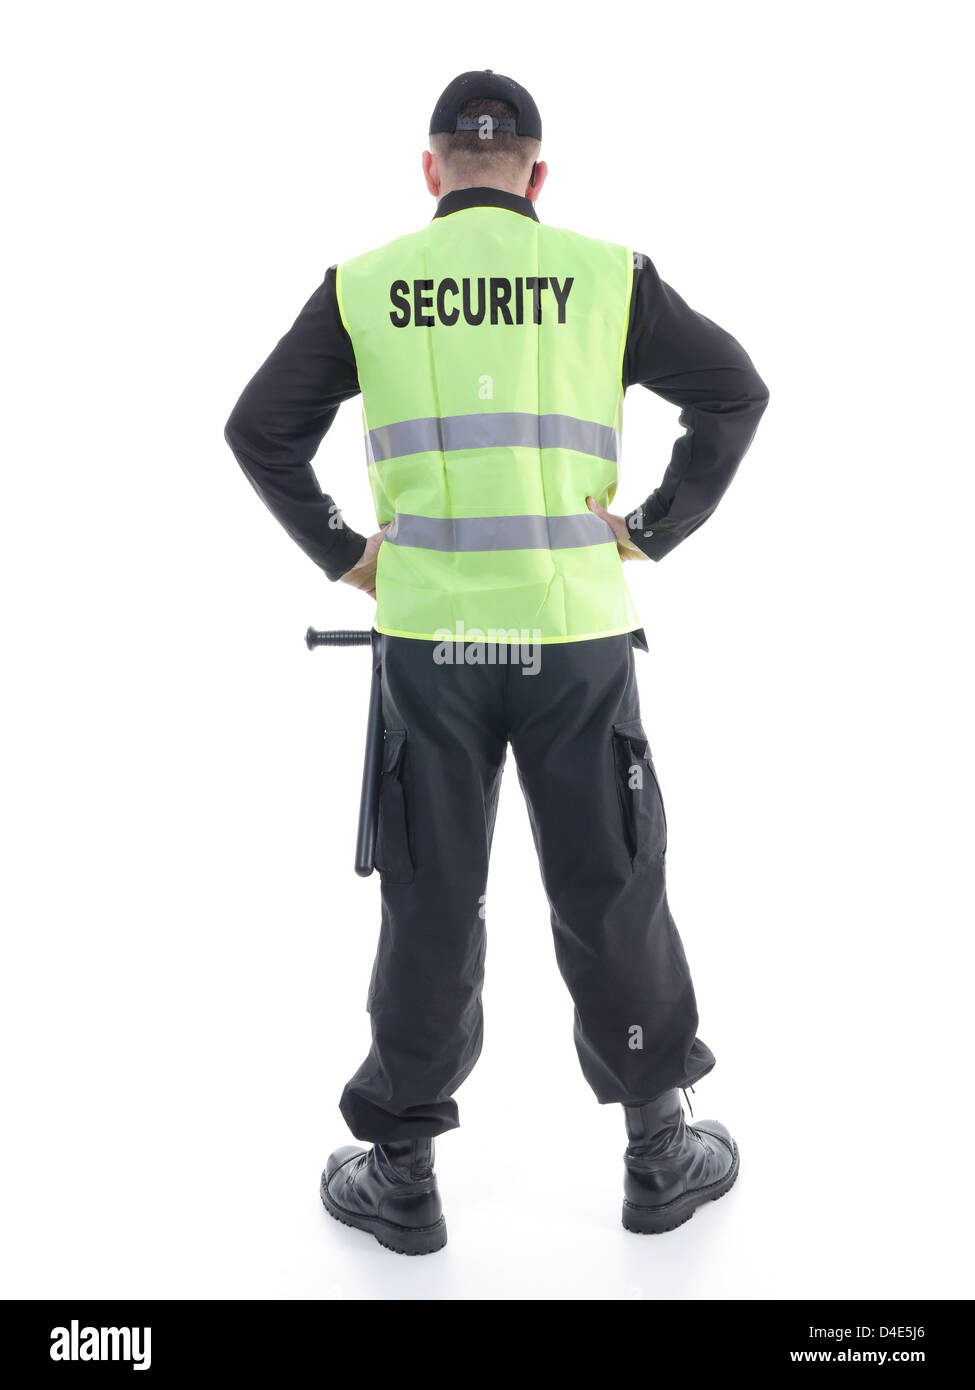 Security man wearing black uniform and yellow reflective vest standing confidently with arms resting on hips, facing - Stock Image